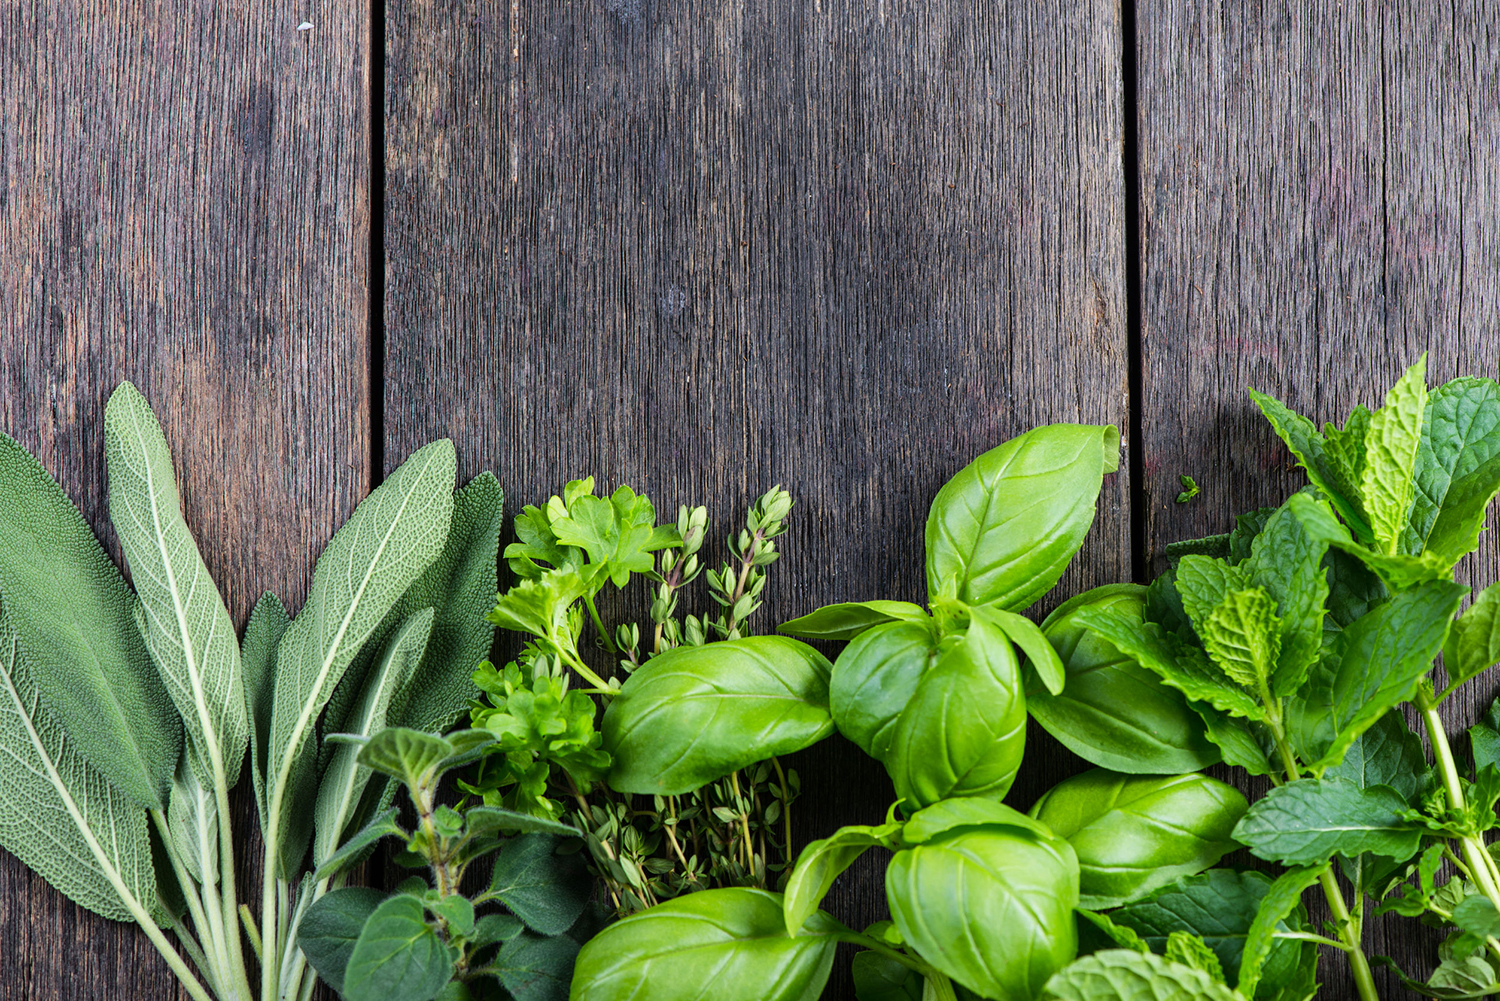 How to grow an indoor herb garden digital trends - Medicinal herbs harvest august dry store ...